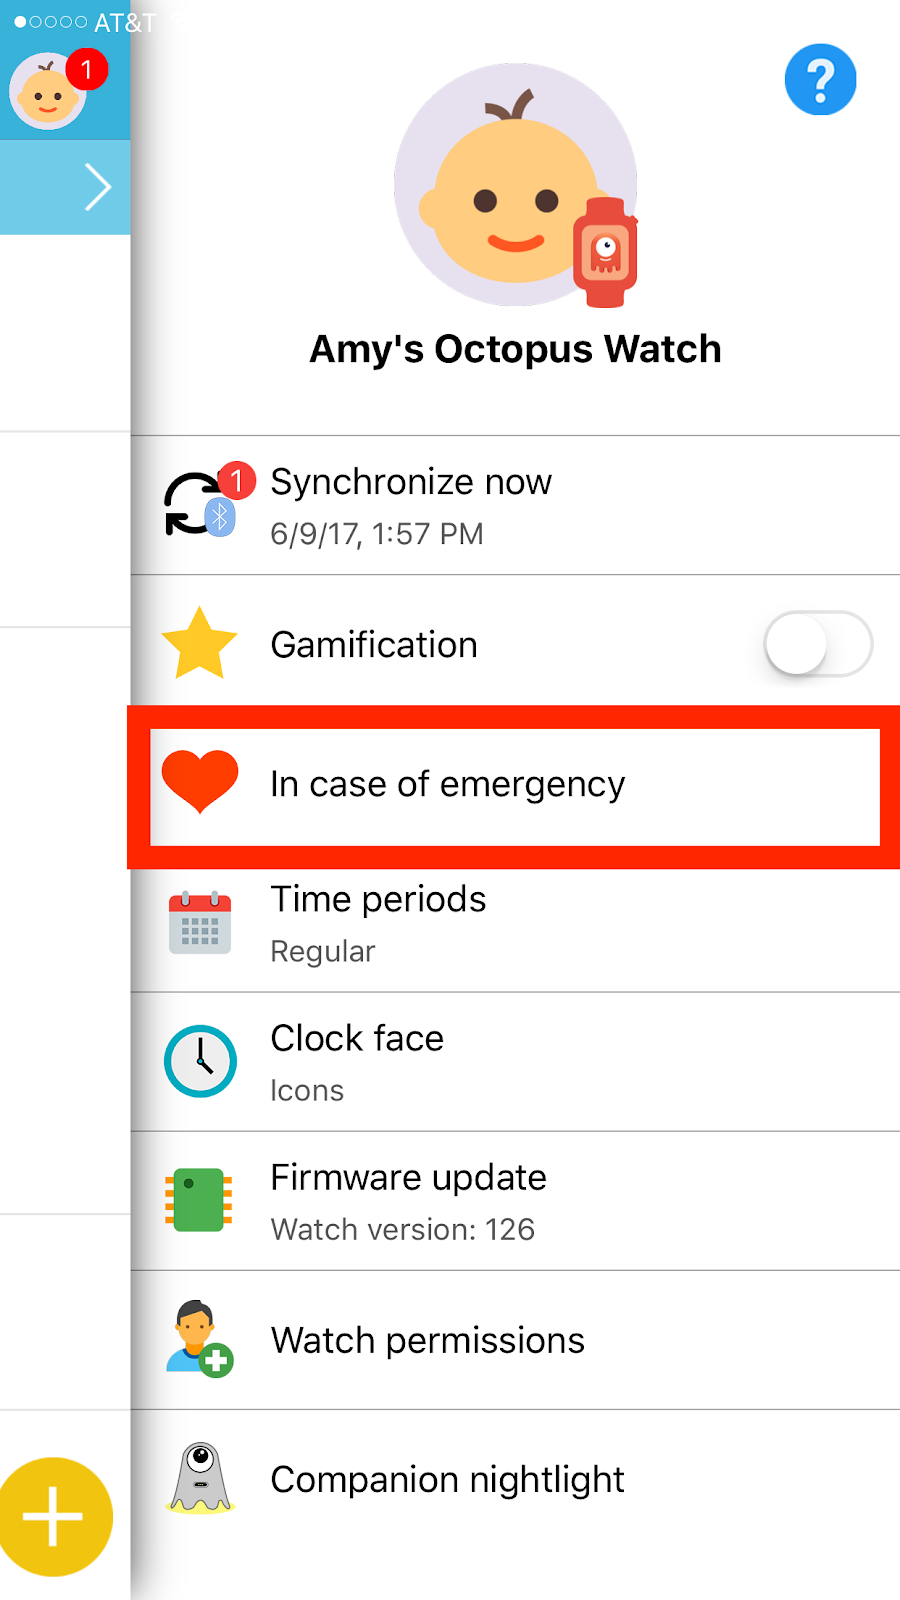 Octopus Watch app: In case of emergency menu